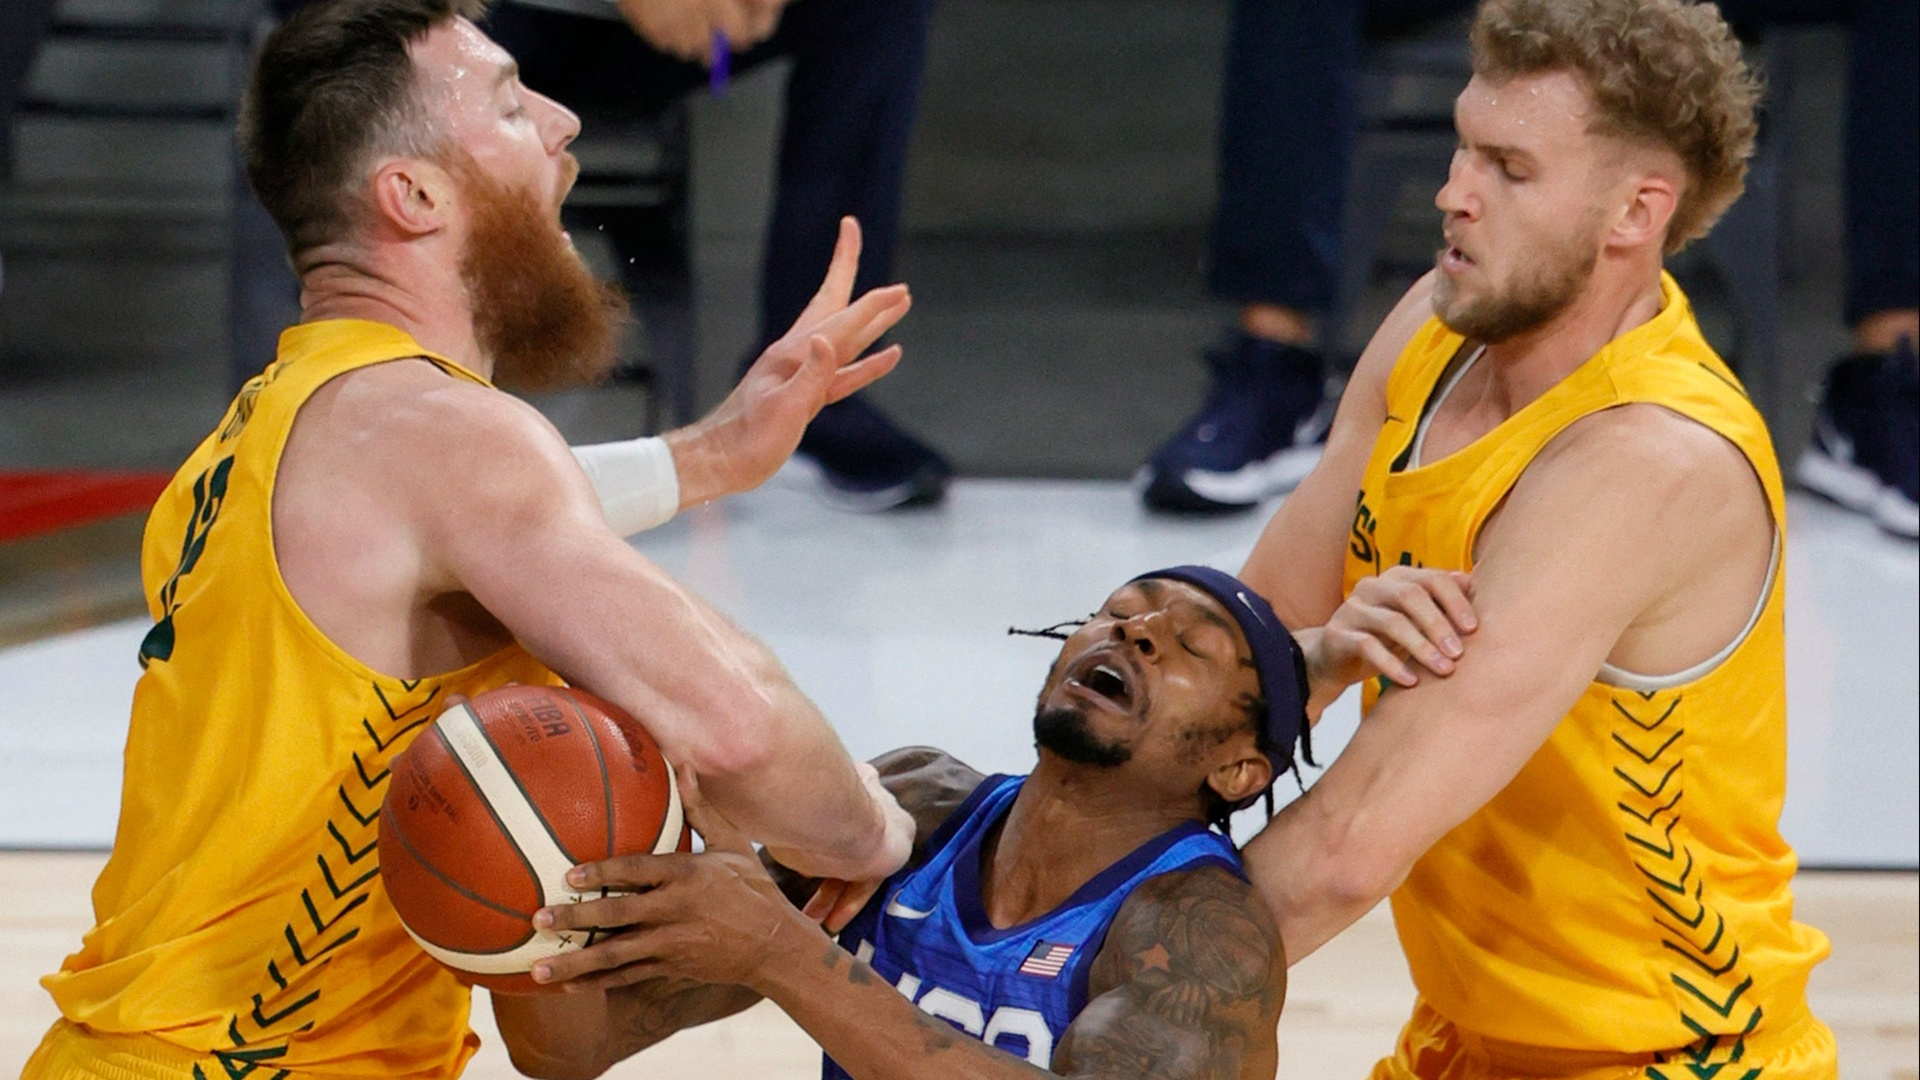 The US basketball team stumbles again before the Tokyo Olympics (video)